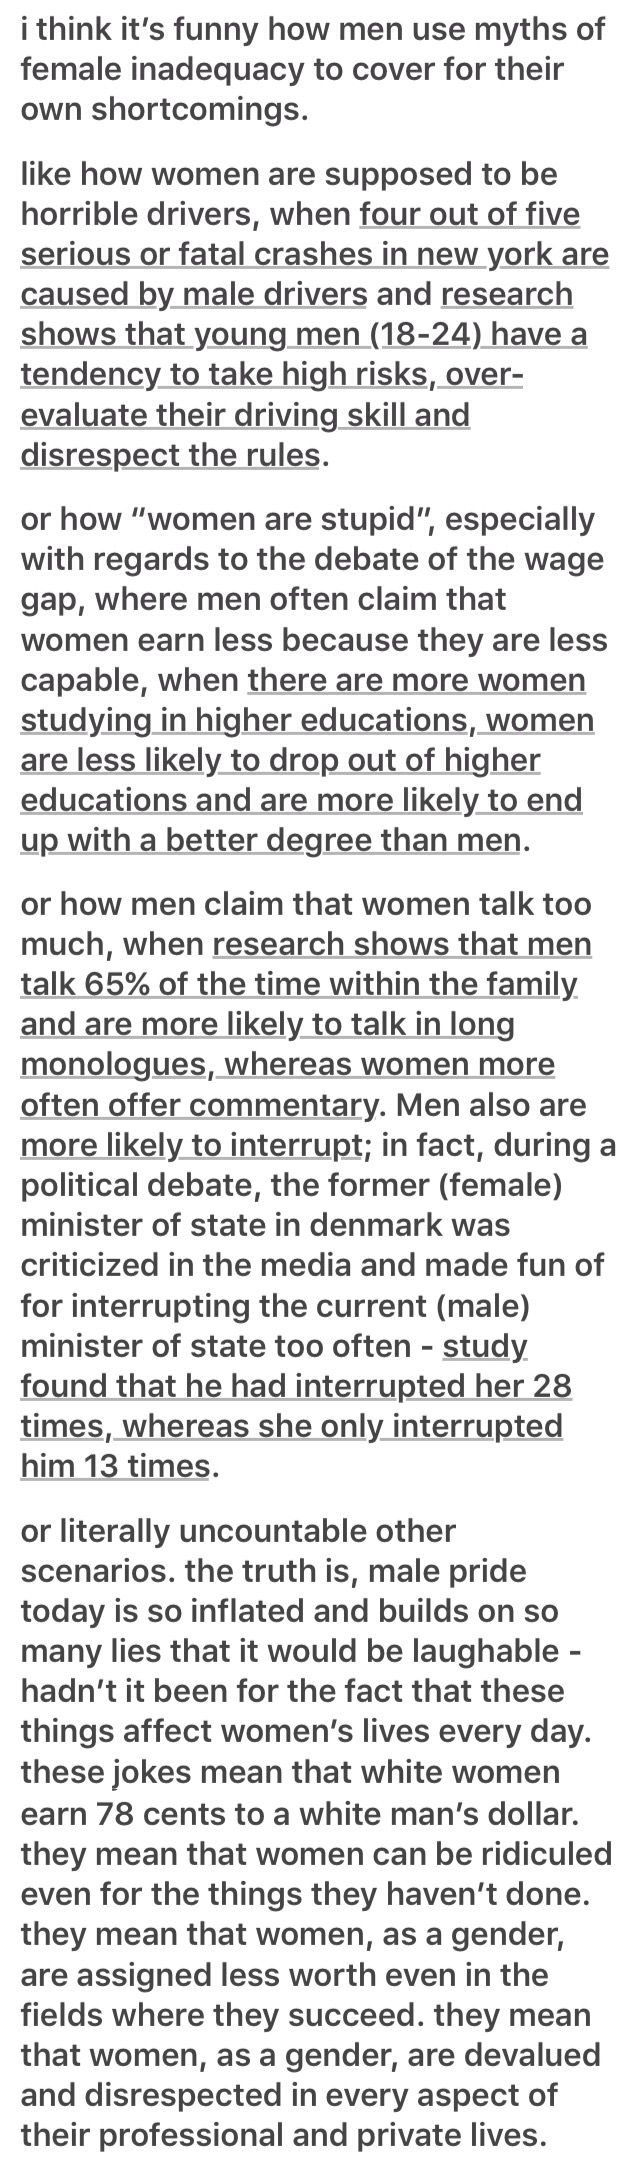 Equal rights for men and women women amp men different but equal - The 25 Best Intersectional Feminism Ideas On Pinterest Feminism Feminism Definition And Meaning Of Feminist